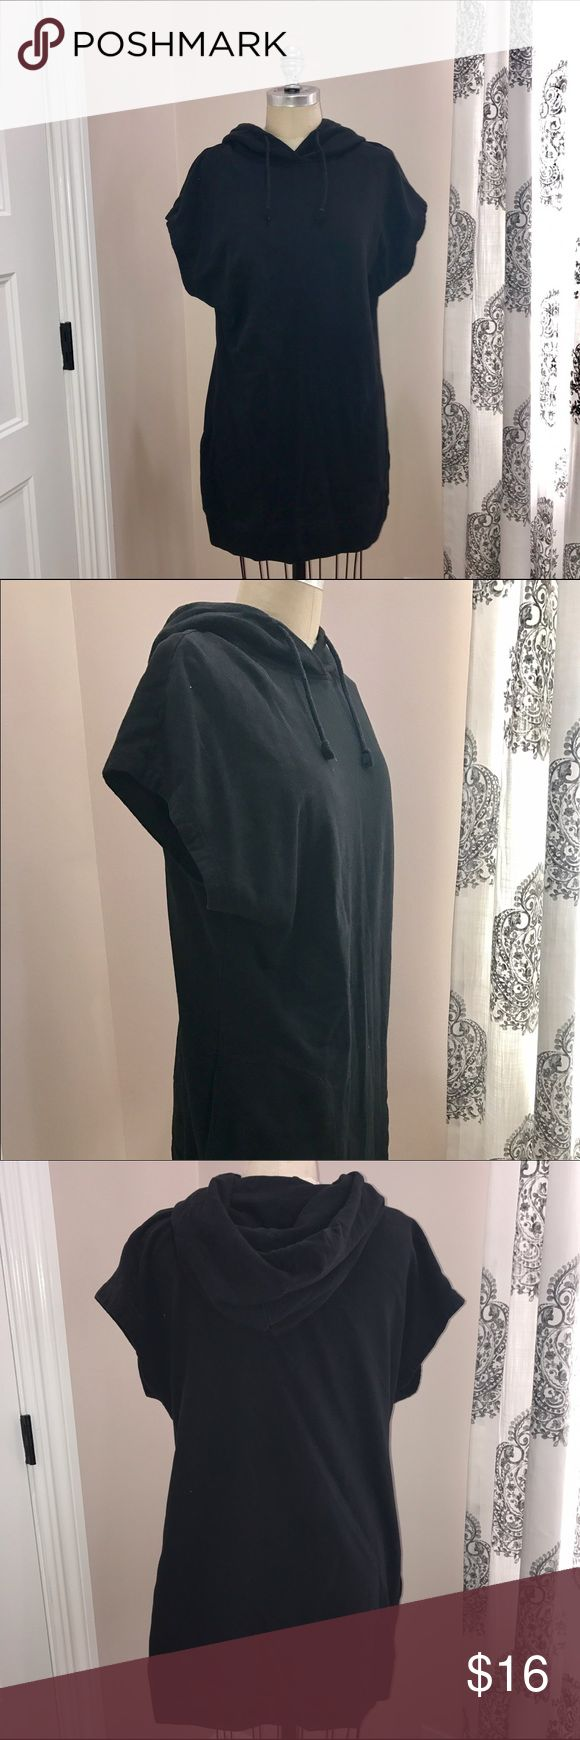 Uniqlo Plush Sweatsuit Dress Work out style sweat dress. Includes plush and comfortable fabric with a hood and large pockets. Perfect for running in and out of the gym quickly and cutely. ❤️Well Kept Items ⭐️Top Rated Seller 💰Accepts Offers 🎱Only Fair Pricing 🛍Bundle and Save ⚡️Fast Shipping Uniqlo Dresses Mini